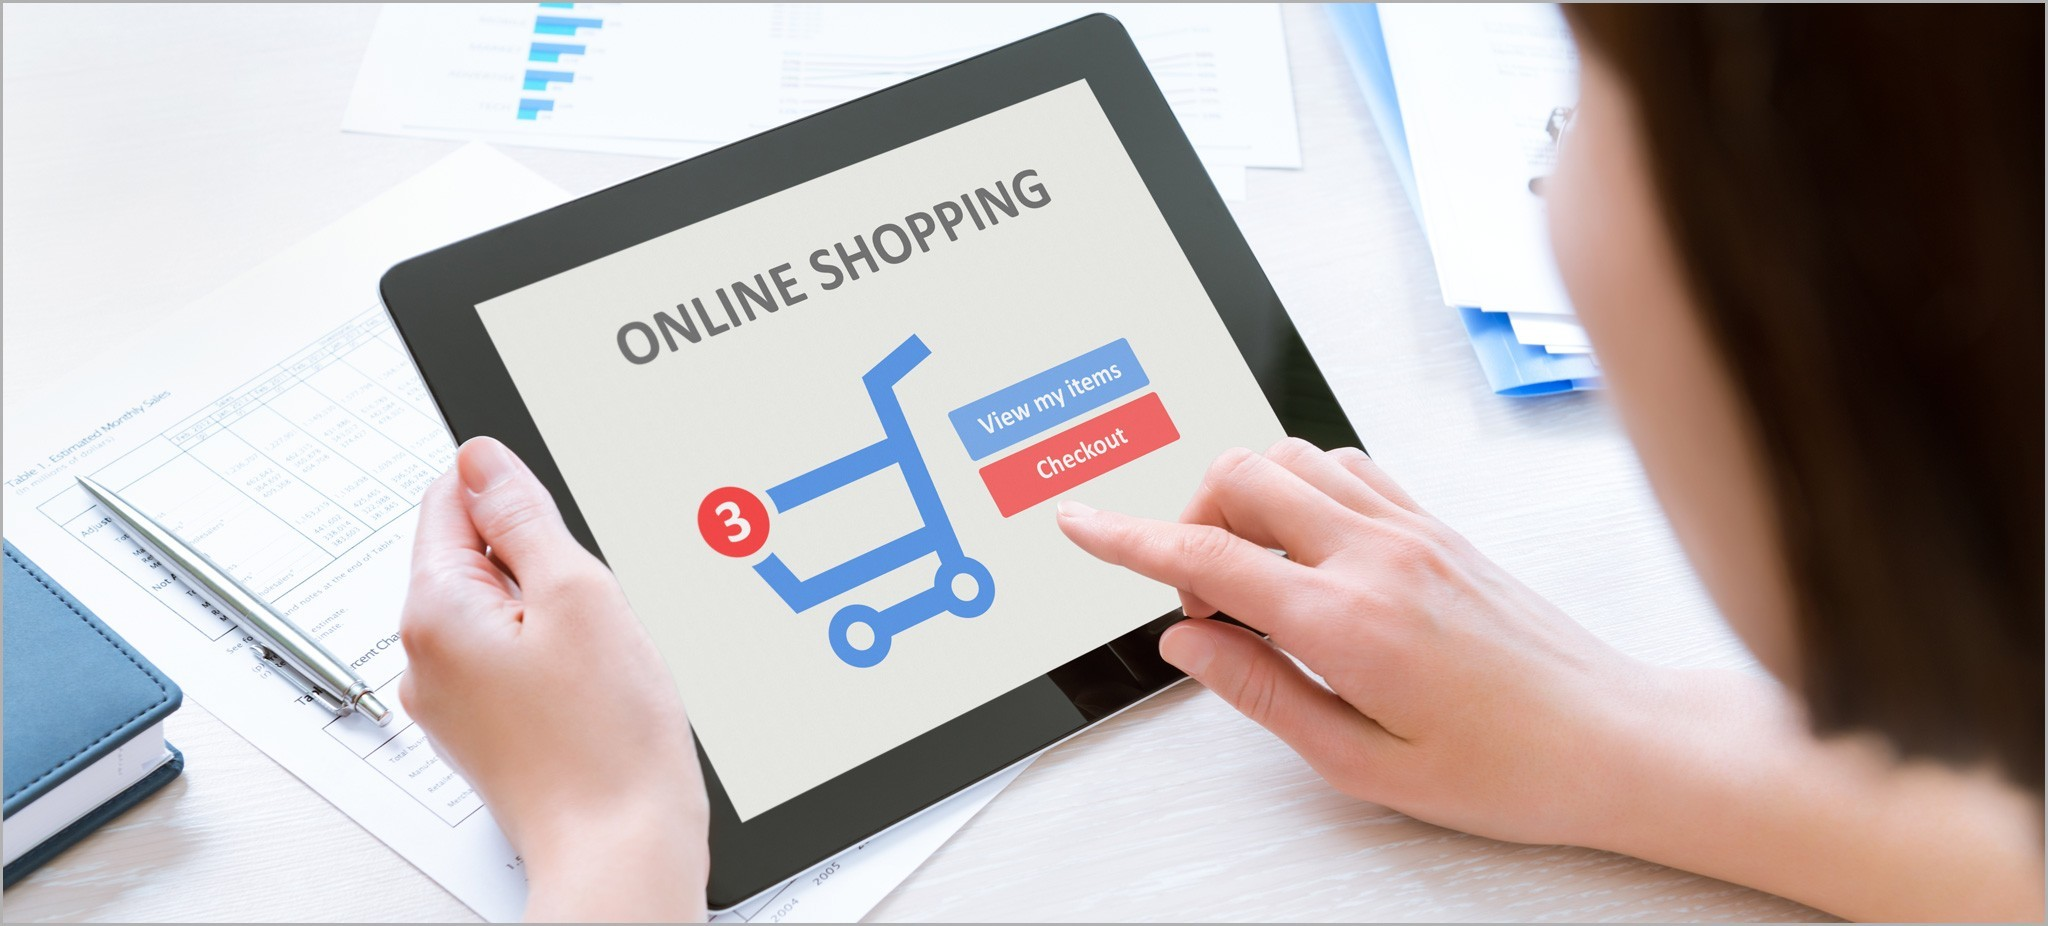 How to Determine the Best Products to Sell Online